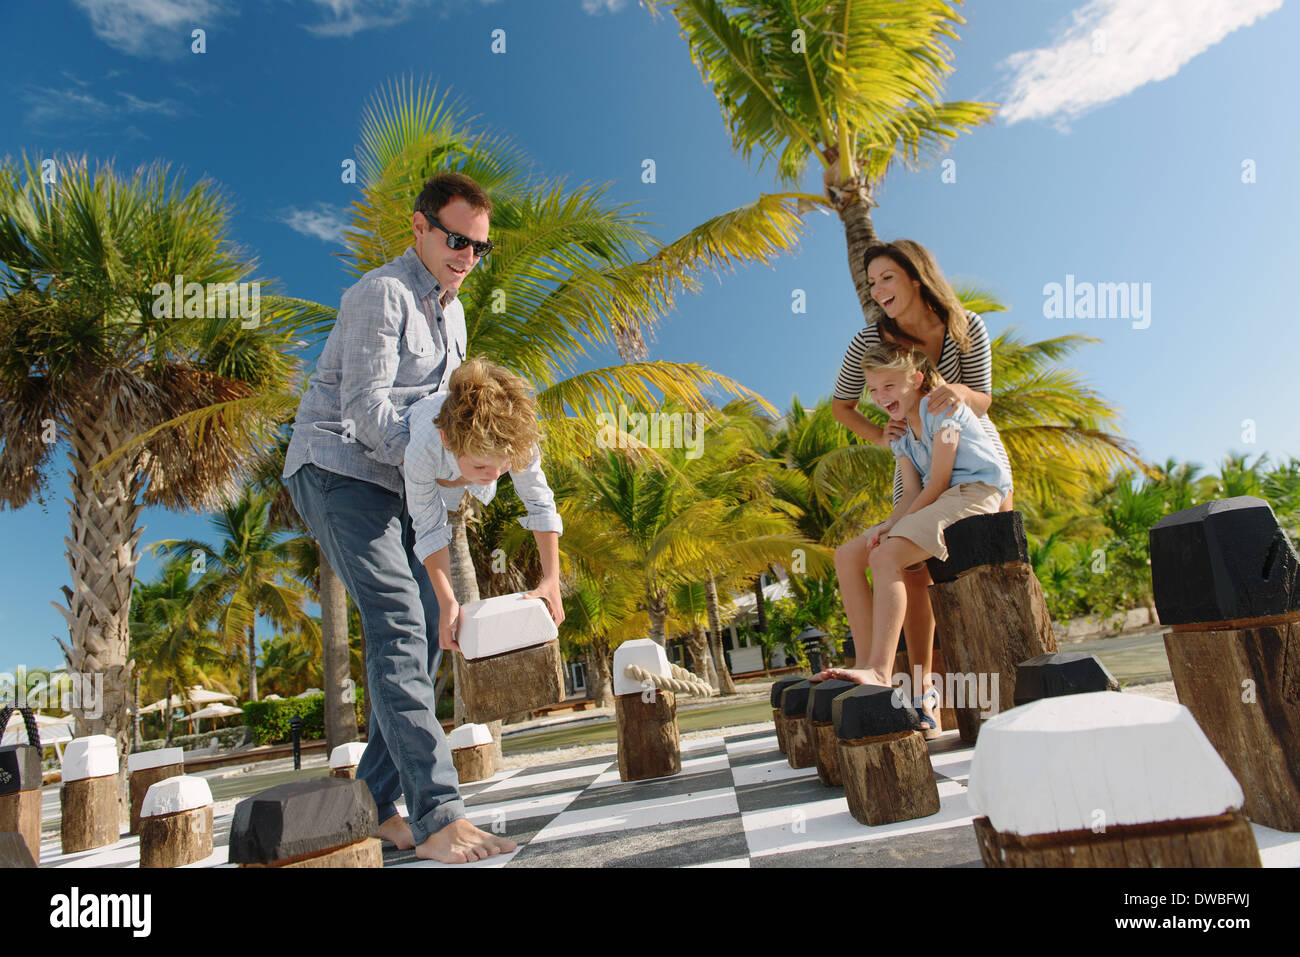 Family playing giant chess, Providenciales, Turks and Caicos Islands, Caribbean - Stock Image